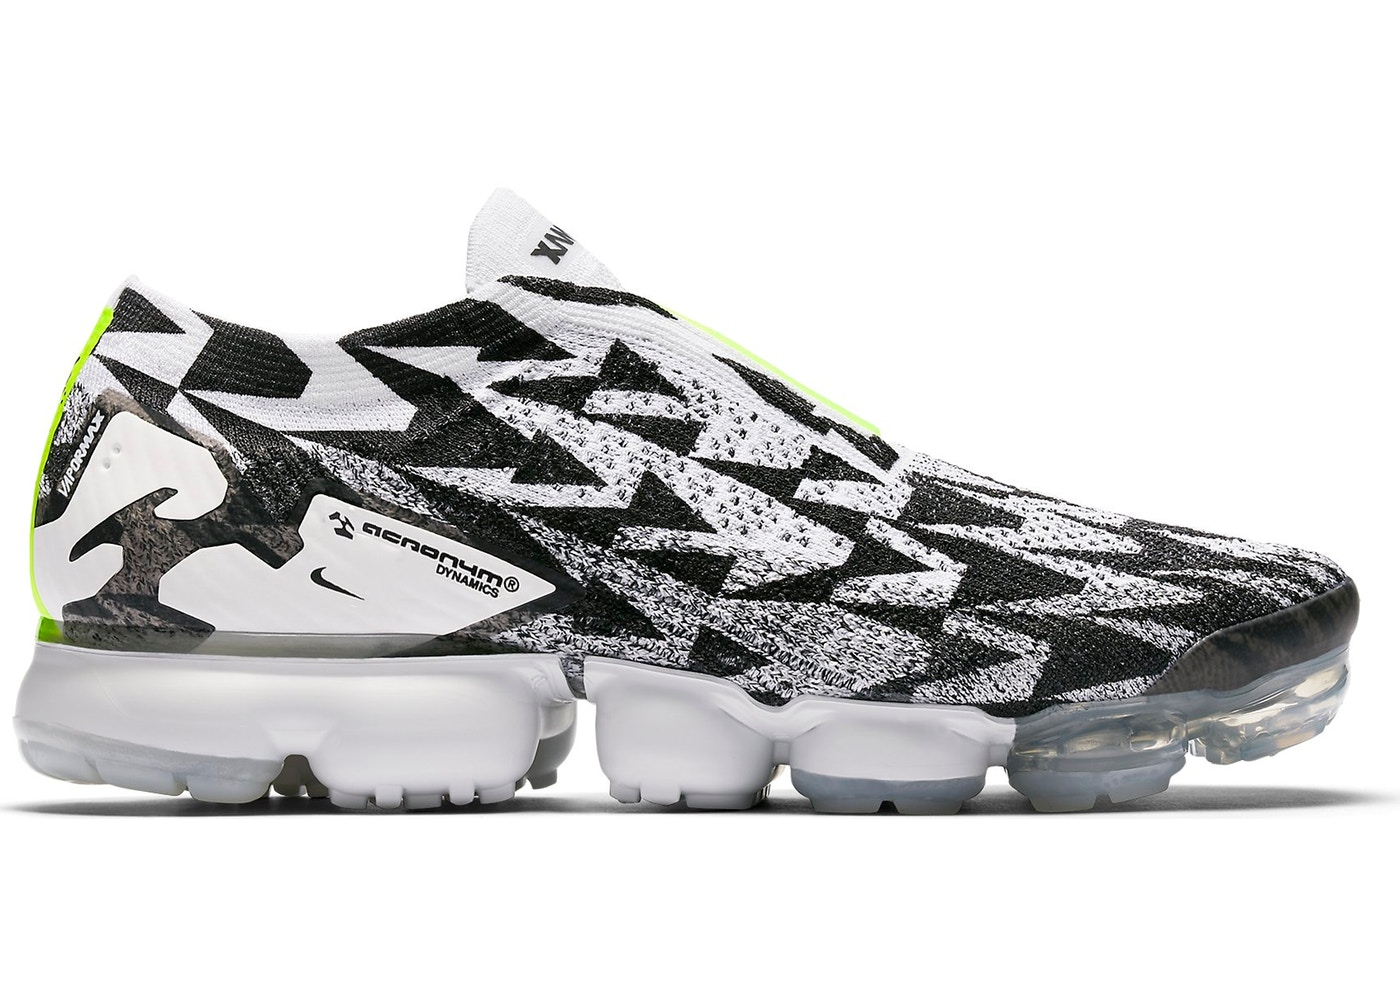 new style 4ce54 1c60c Air VaporMax Moc 2 Acronym Light Bone - AQ0996-001